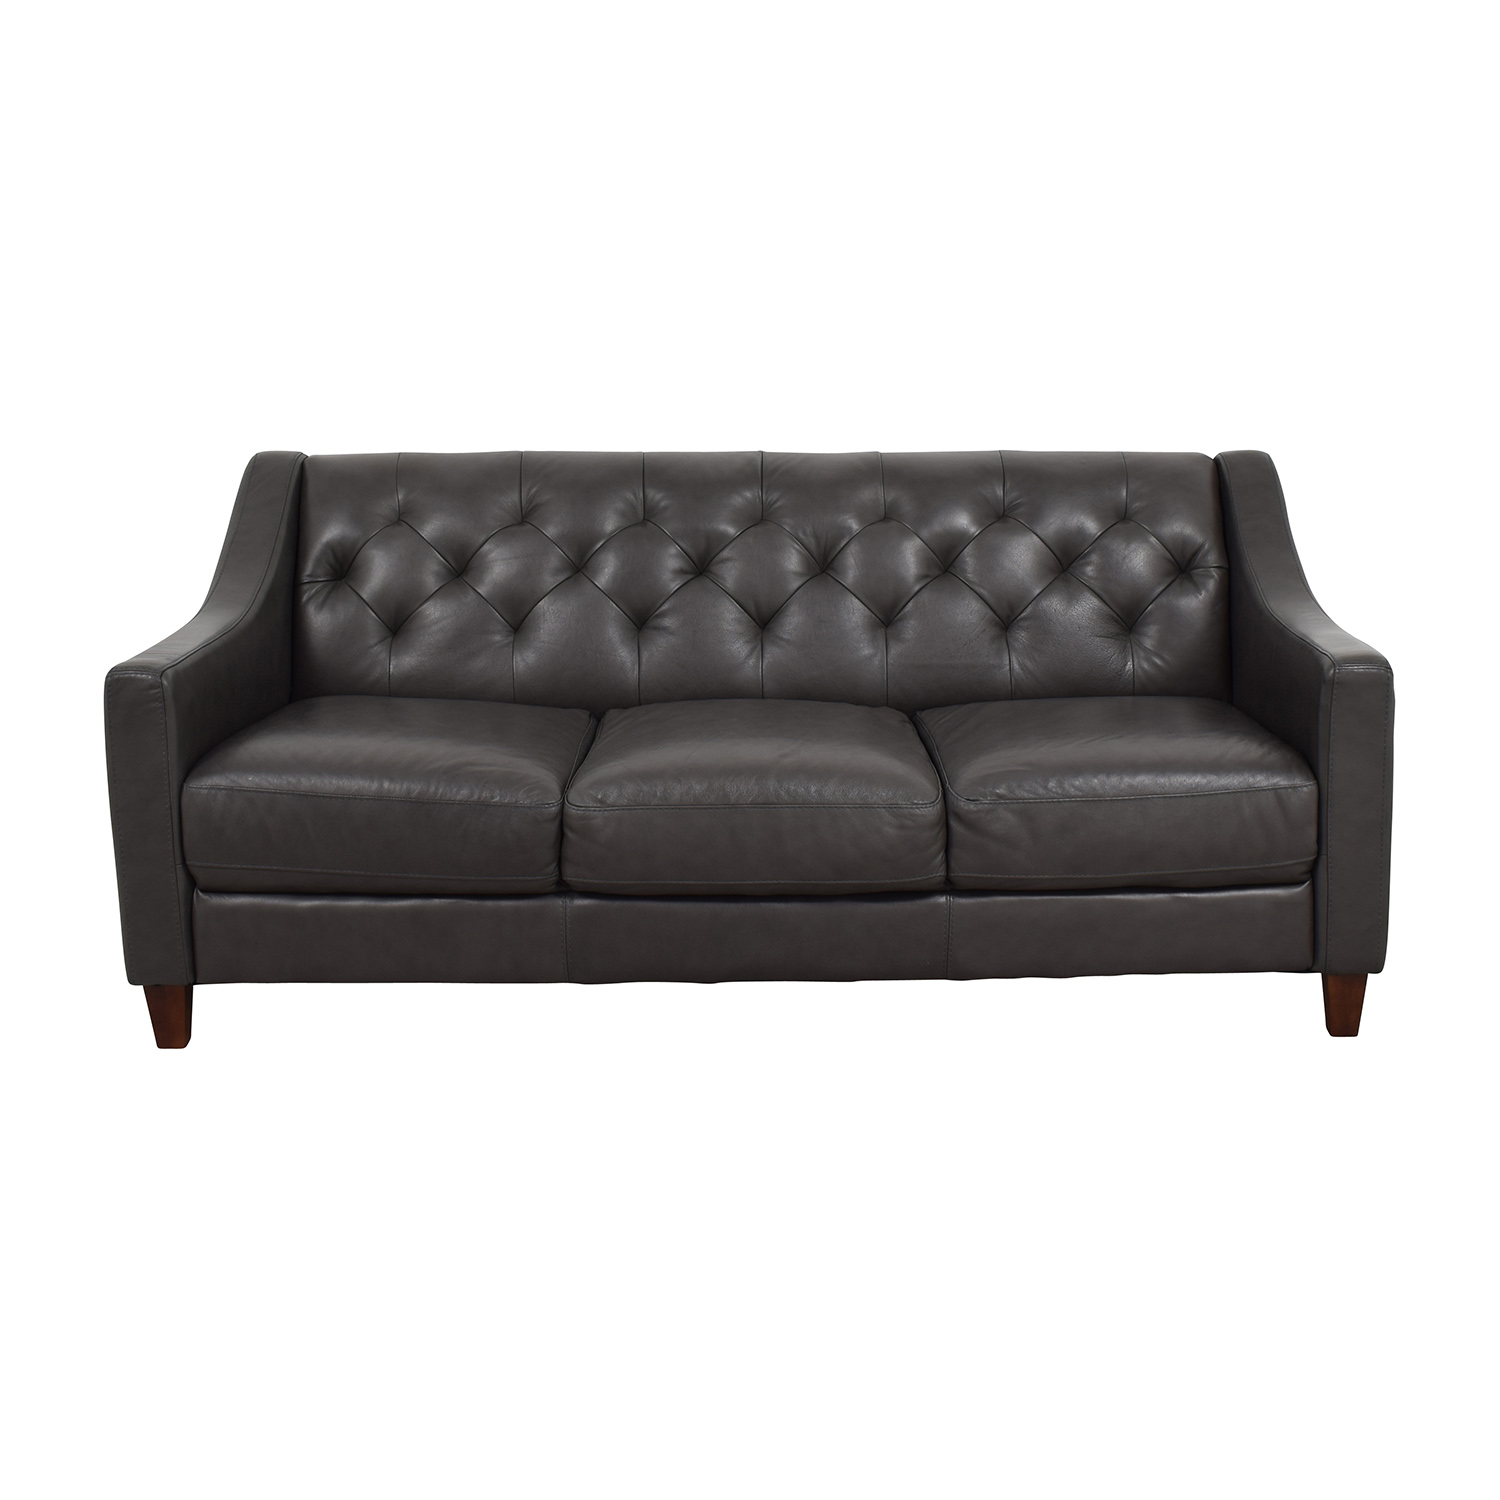 Macys Macys Tufted Gray Leather Sofa